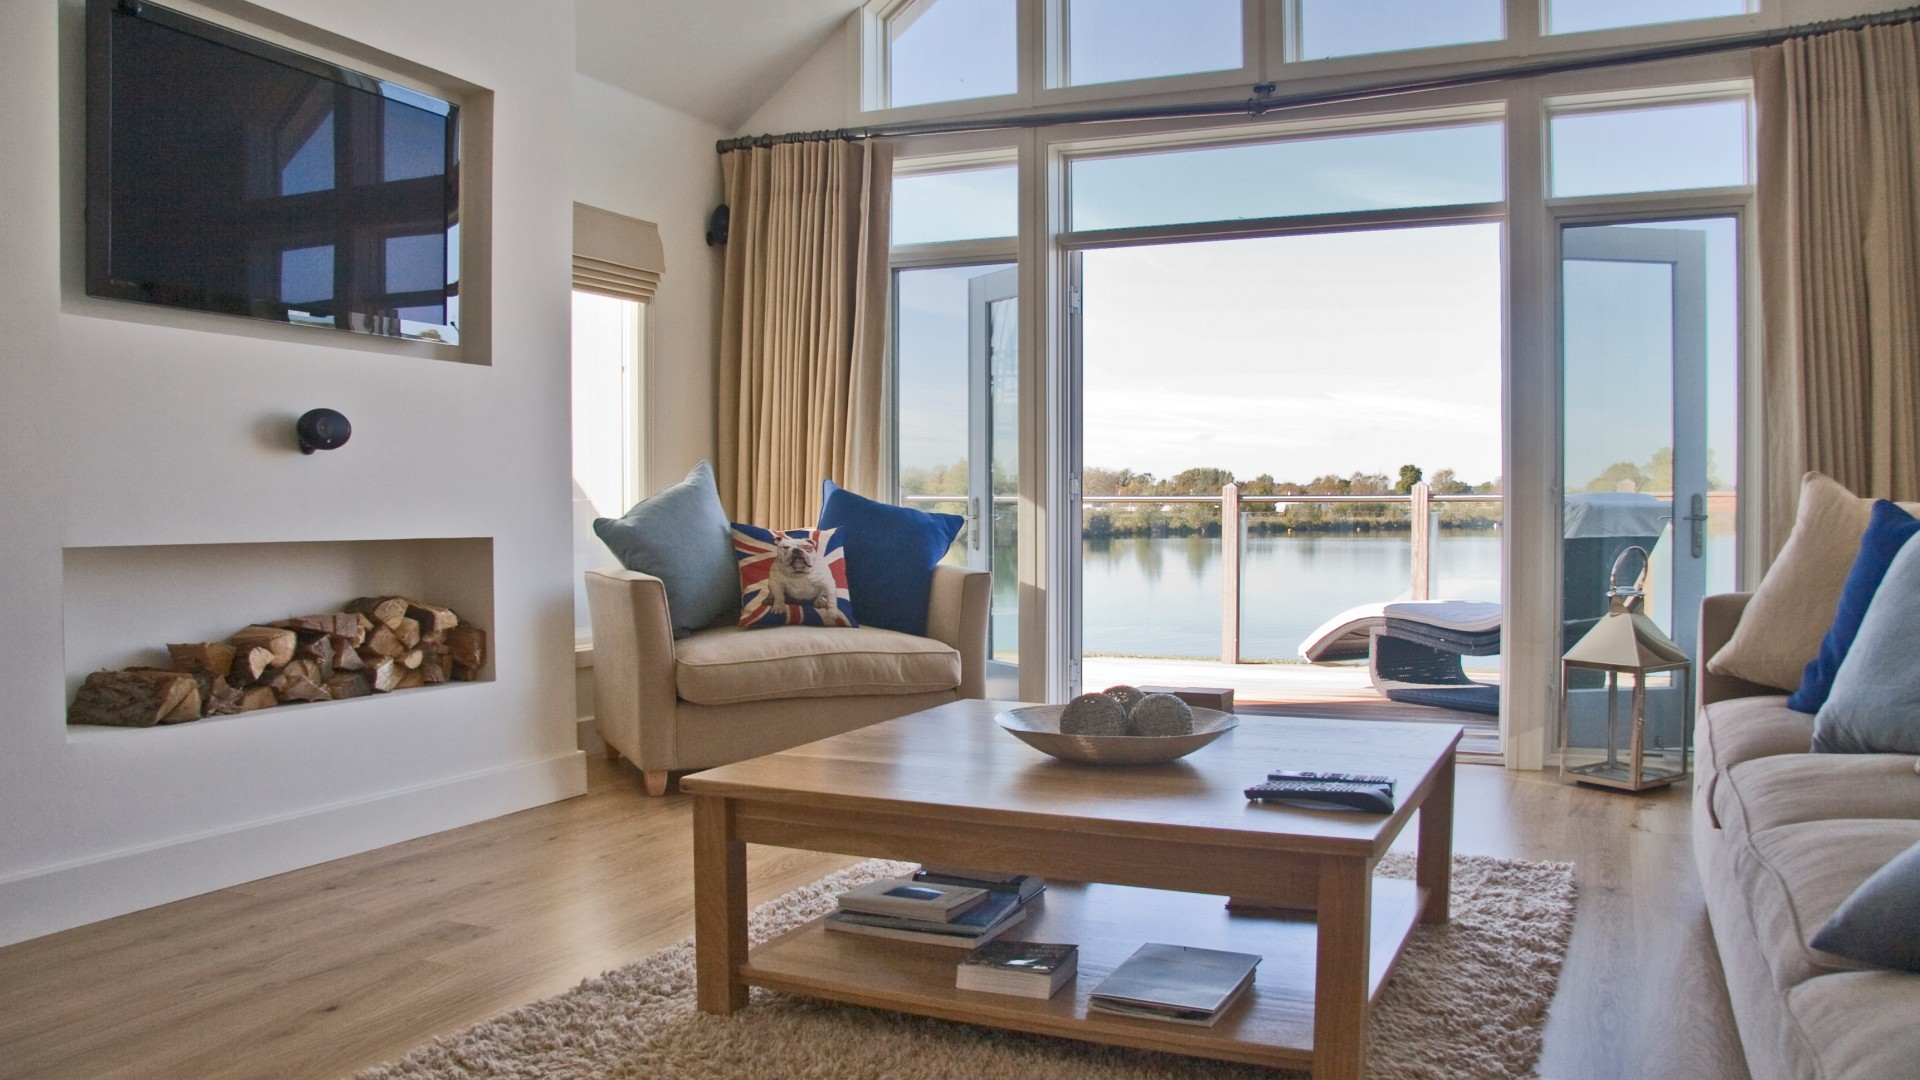 uk holiday homes the perfect investment post brexit